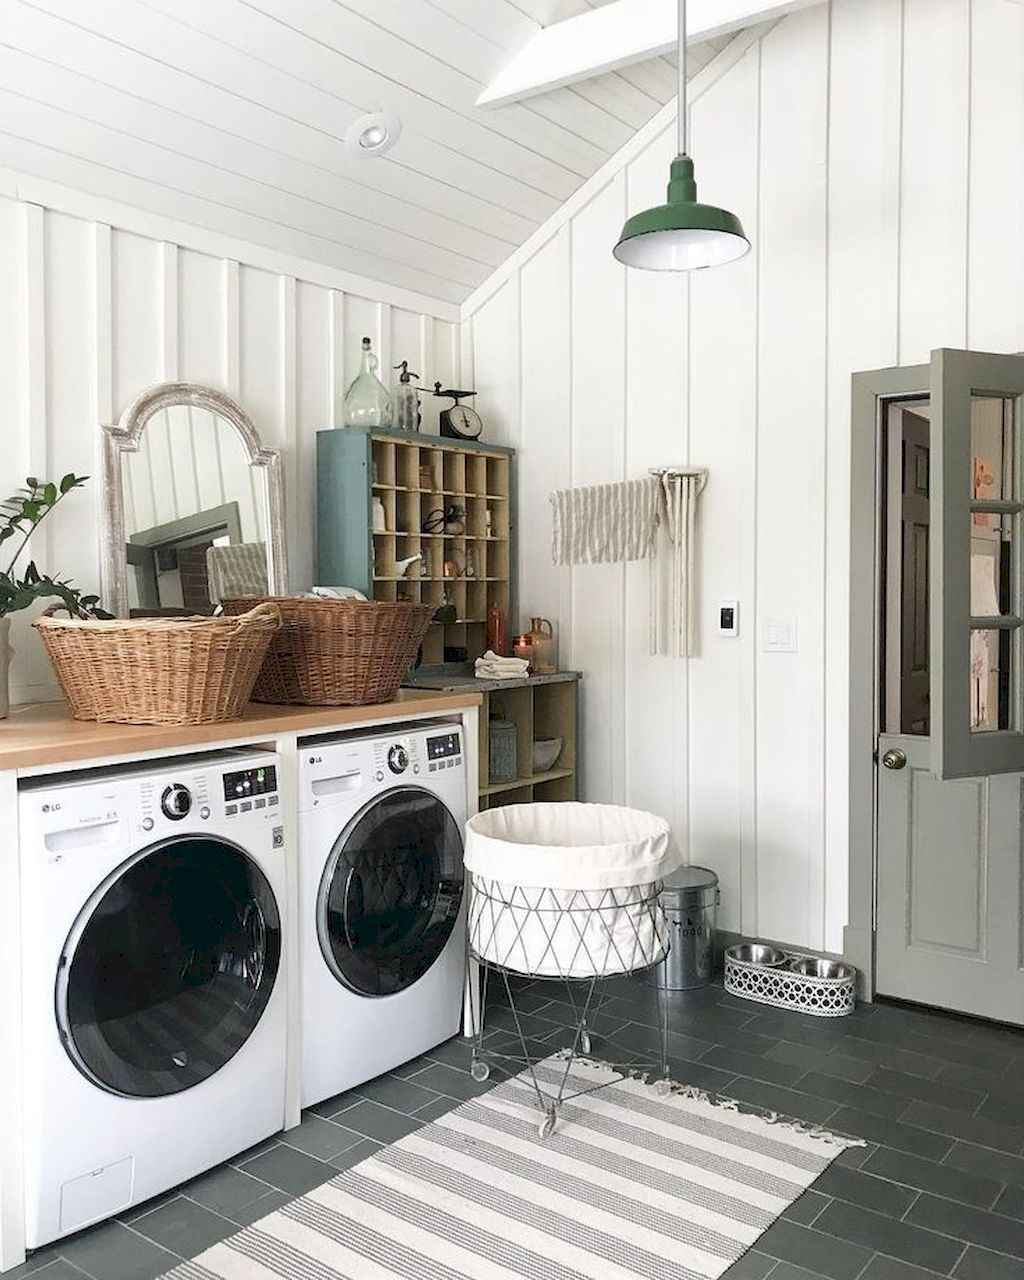 45 Rustic Farmhouse Laundry Room Design Ideas and Makeover (17)